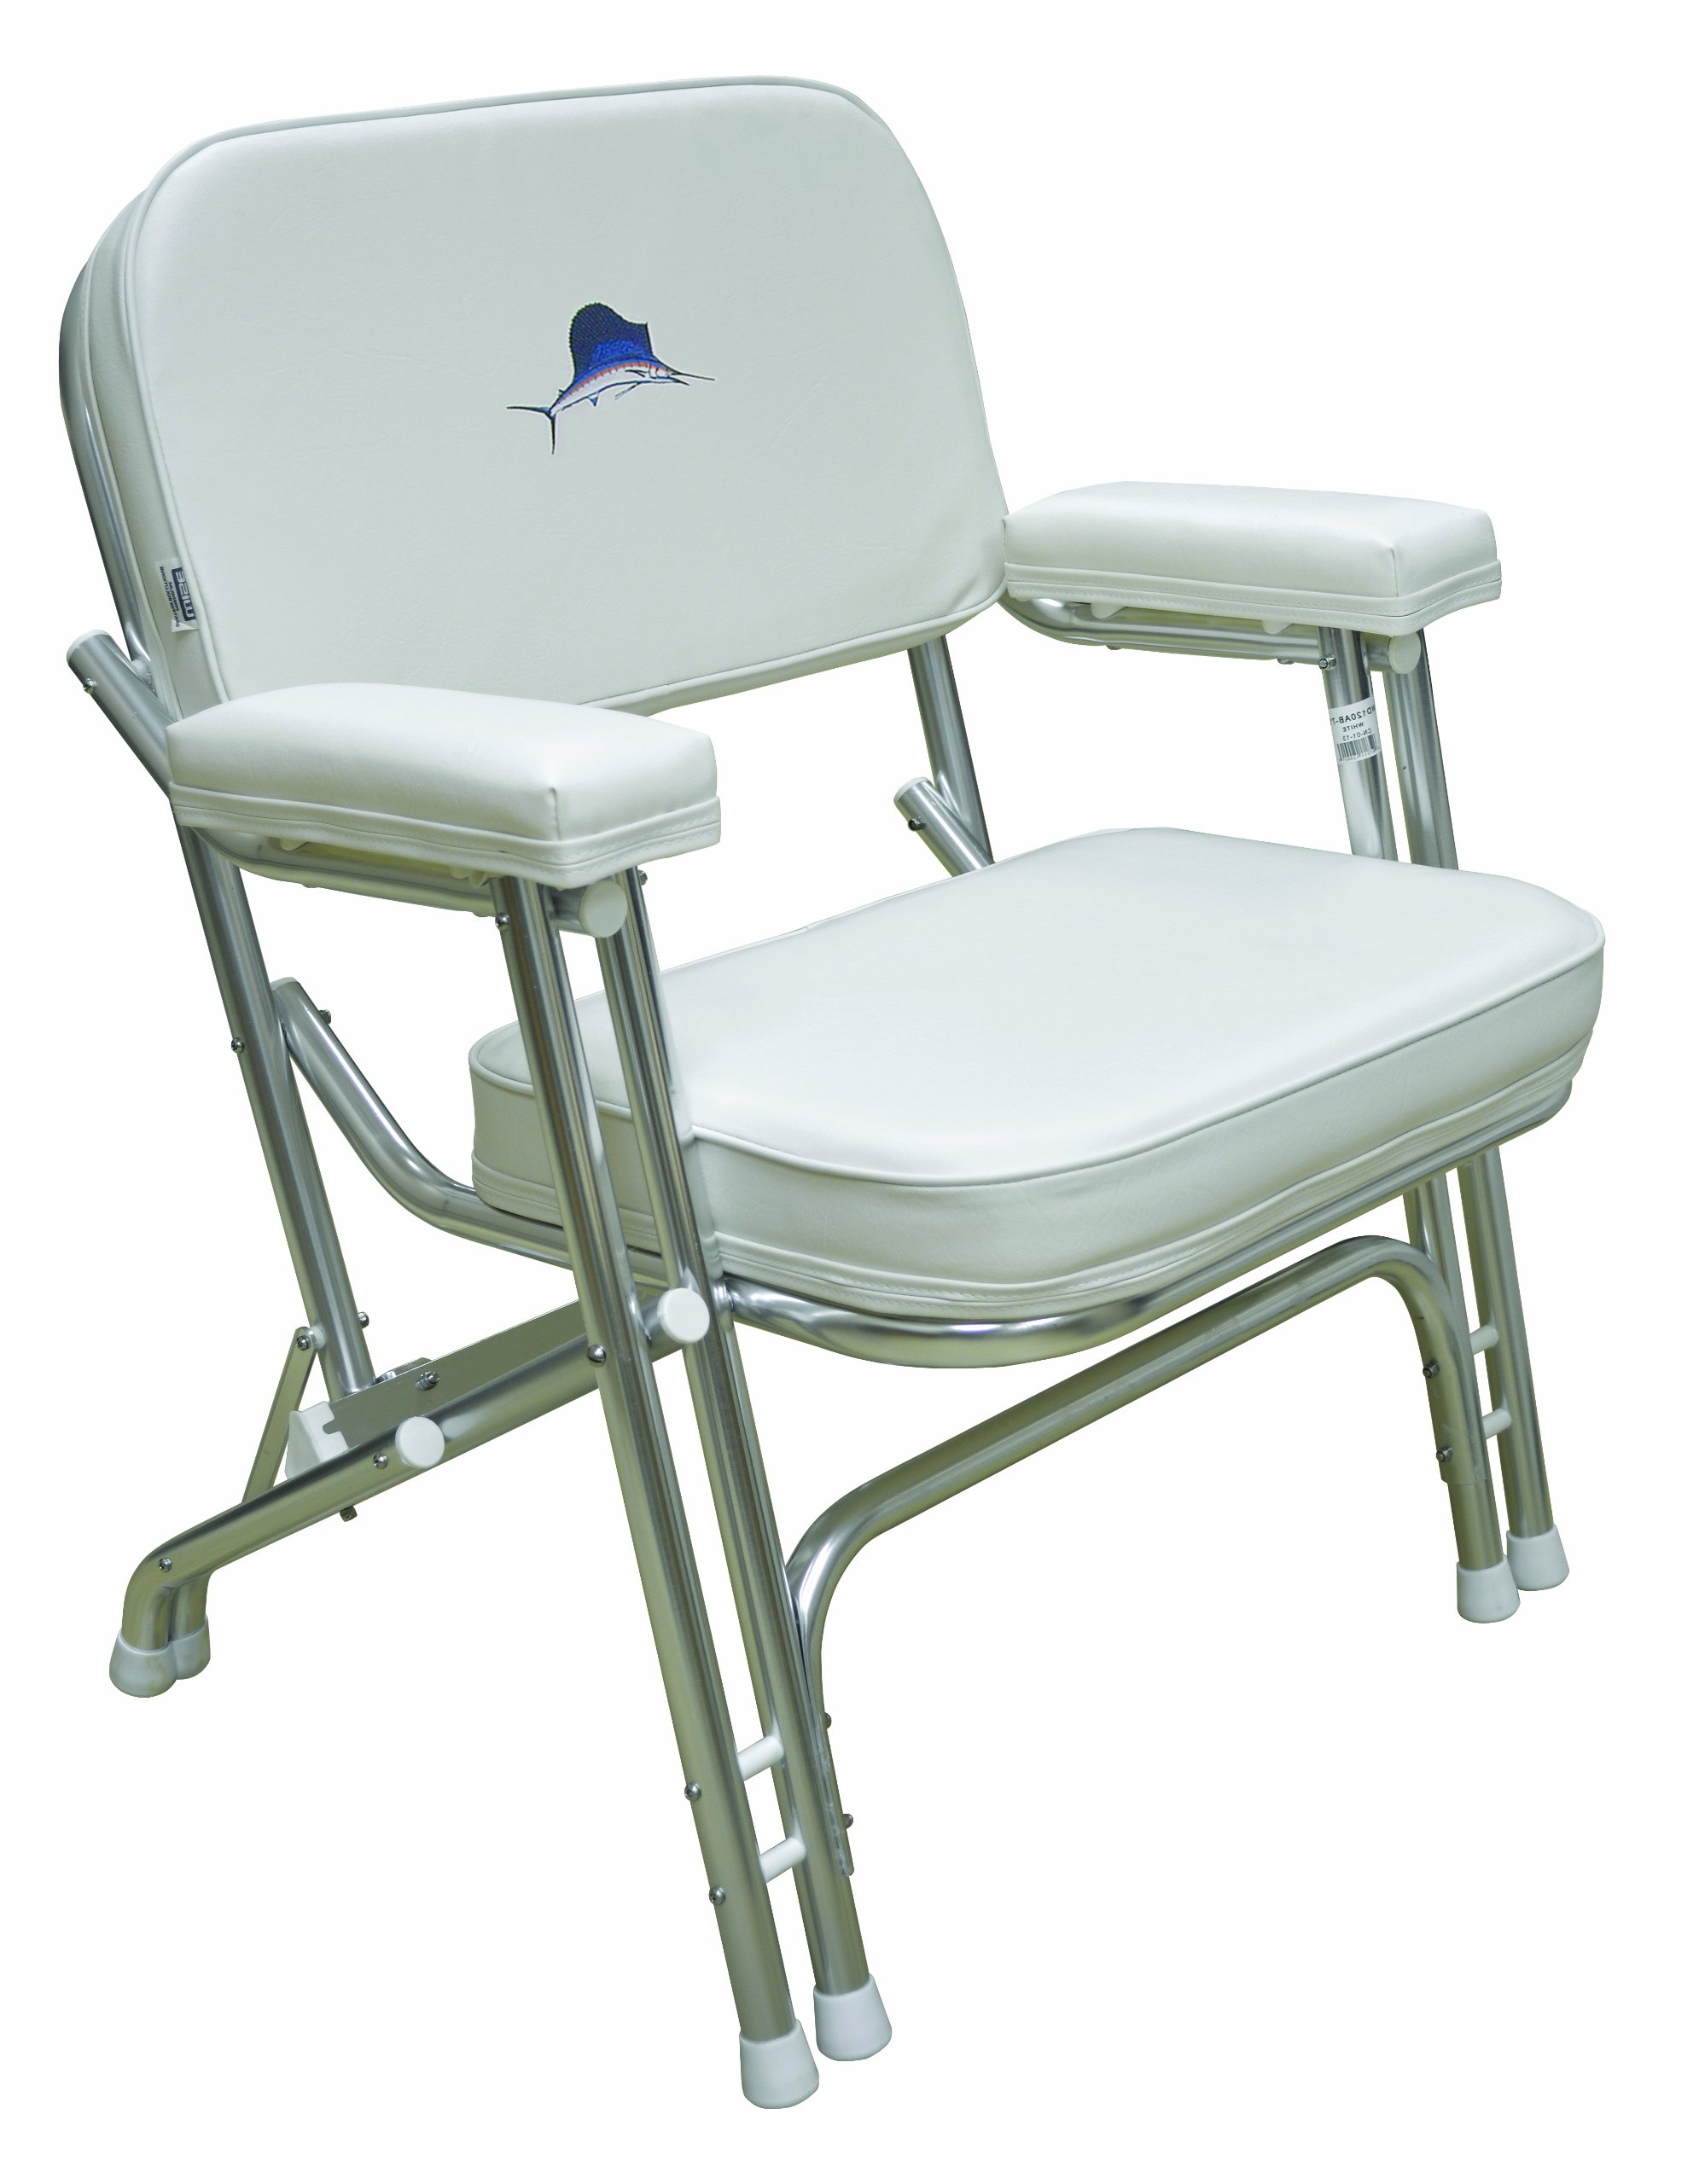 Wise 8WD119-710 Marlin Logo Folding Deck Chair with Aluminum Frame, White by Wise